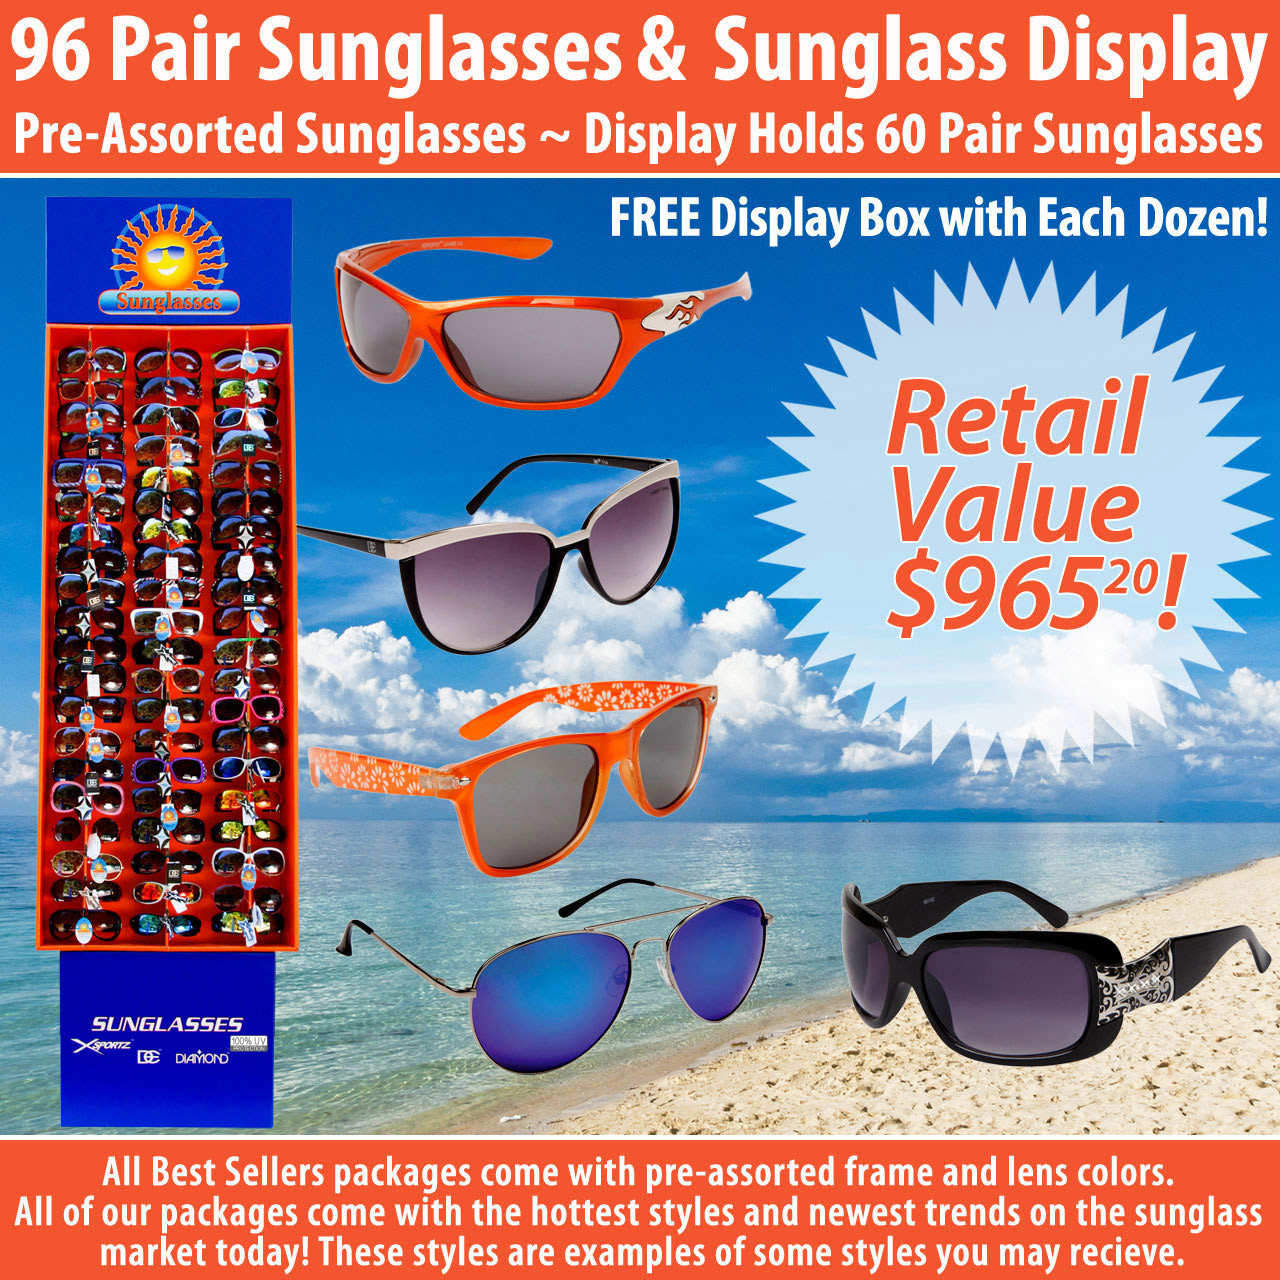 Package Deal SPA15 ~ 96 Pair Sunglasses & Display 7003 (96 pcs.) Display Holds 60 Pair